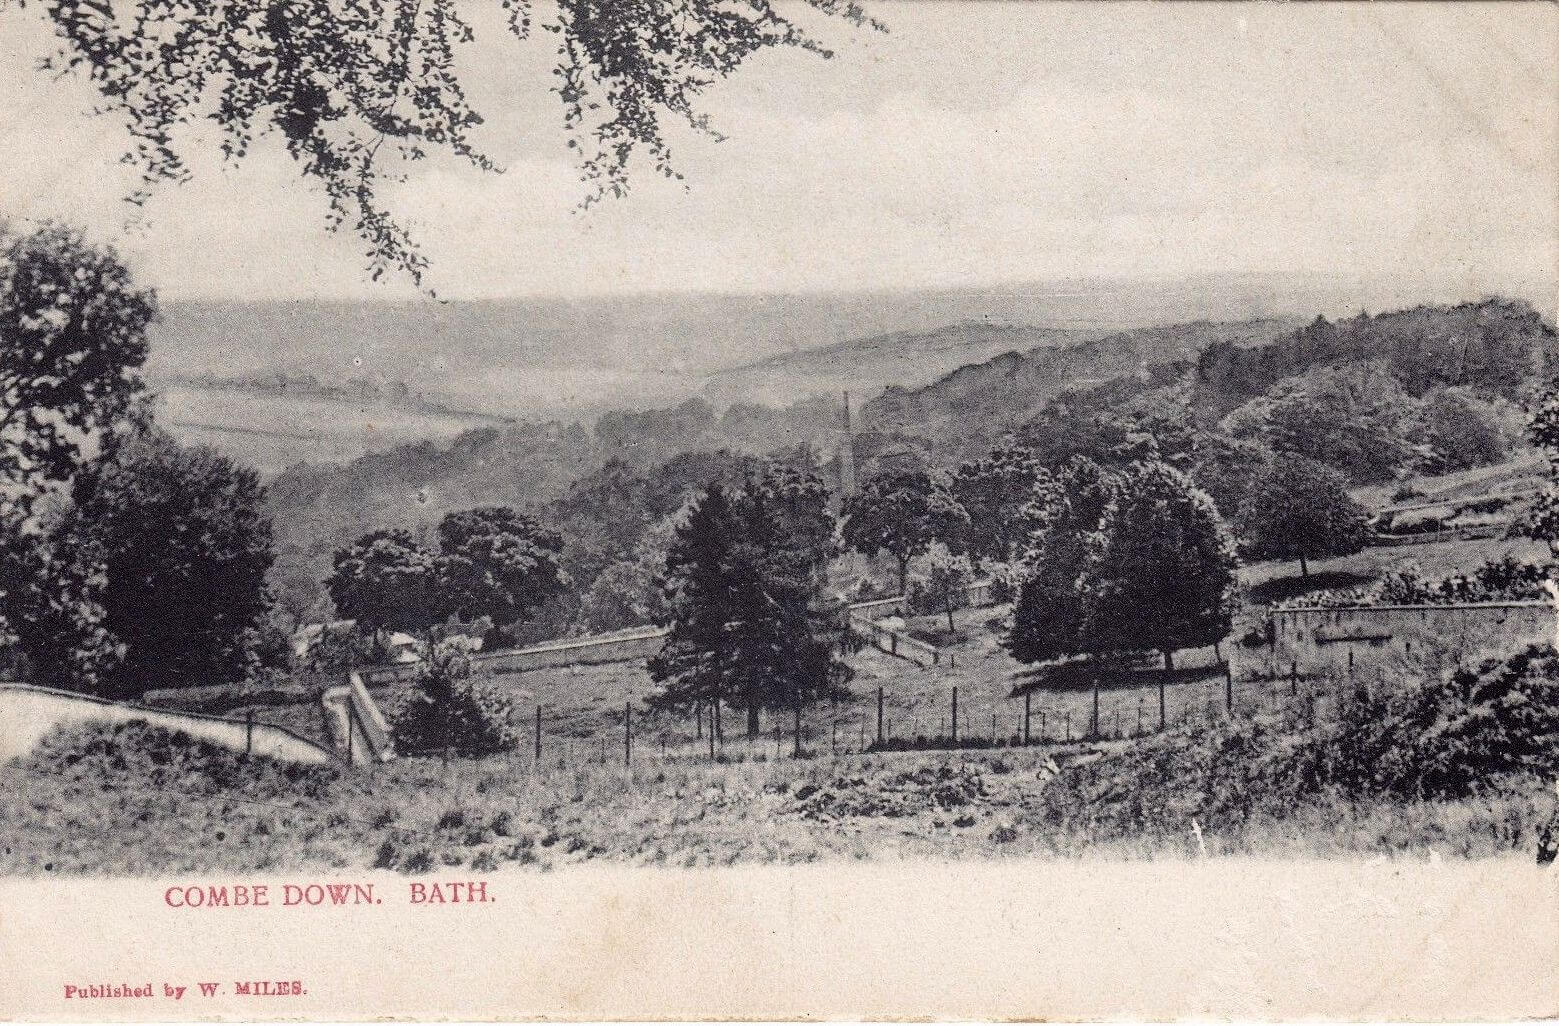 Looking South from Combe Down, early 1900s